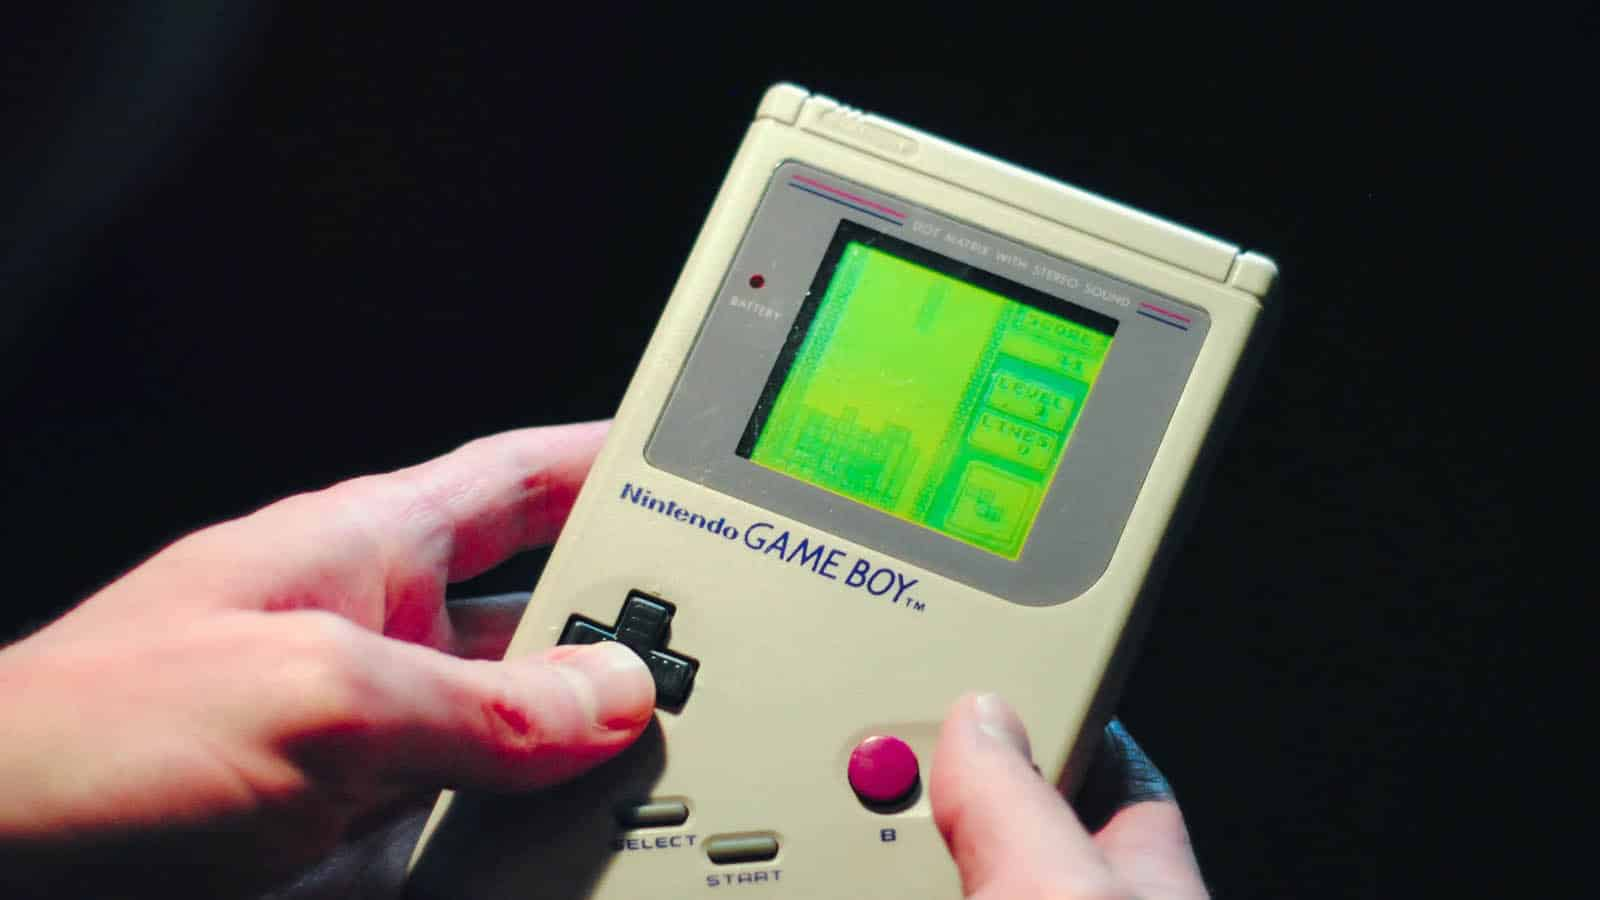 person holding a game boy